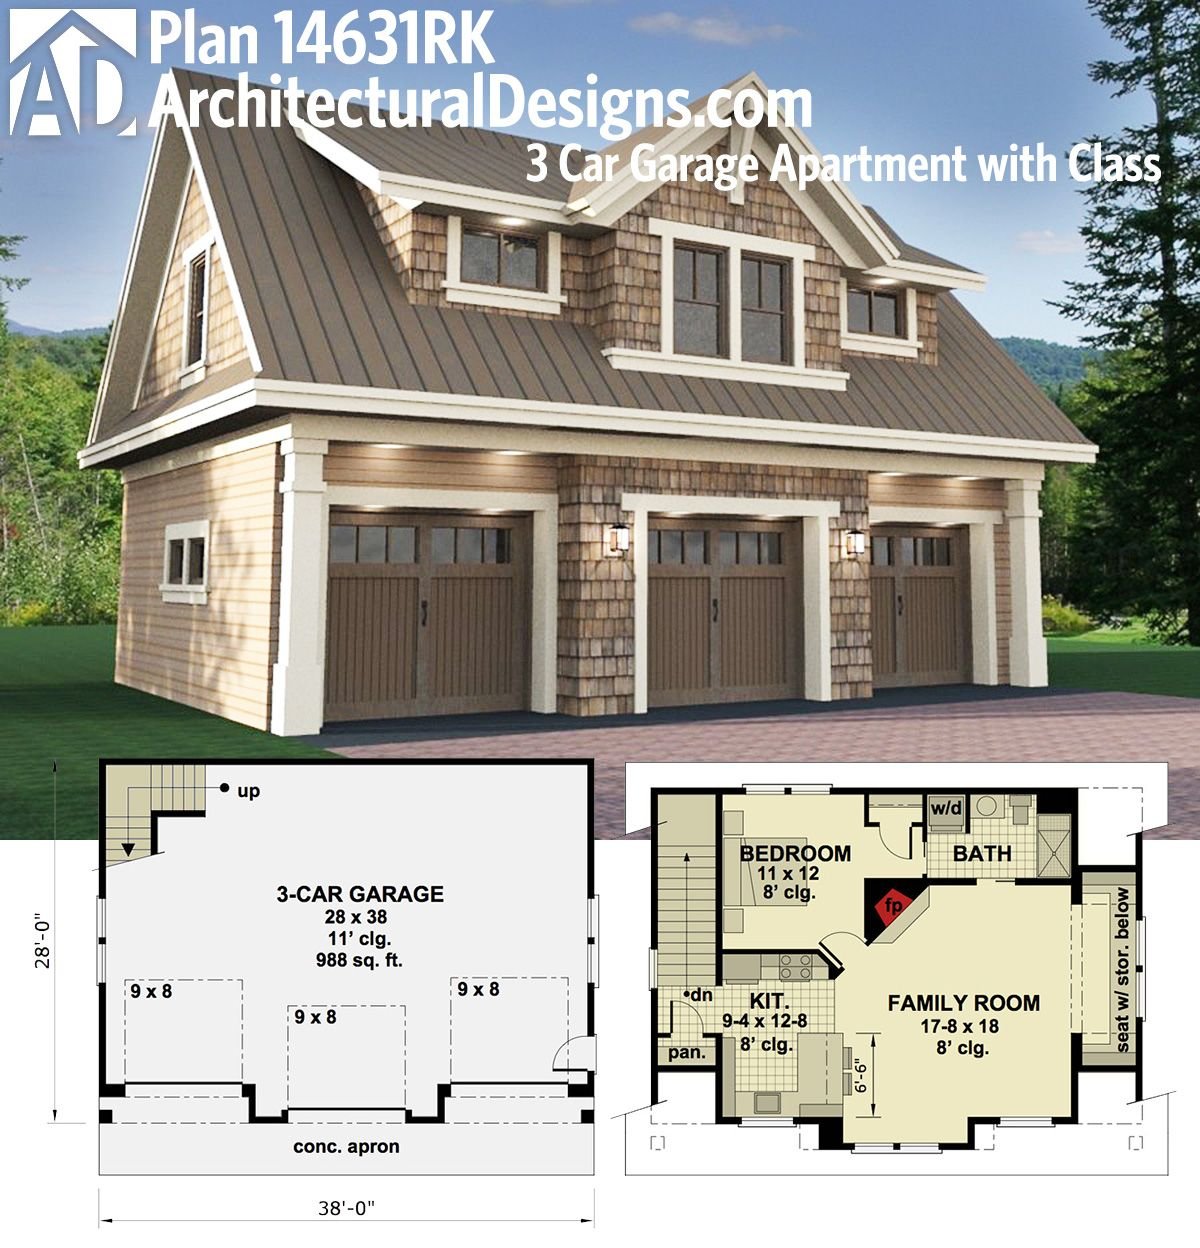 Plan 14631rk 3 car garage apartment with class carriage for Garage with attached apartment